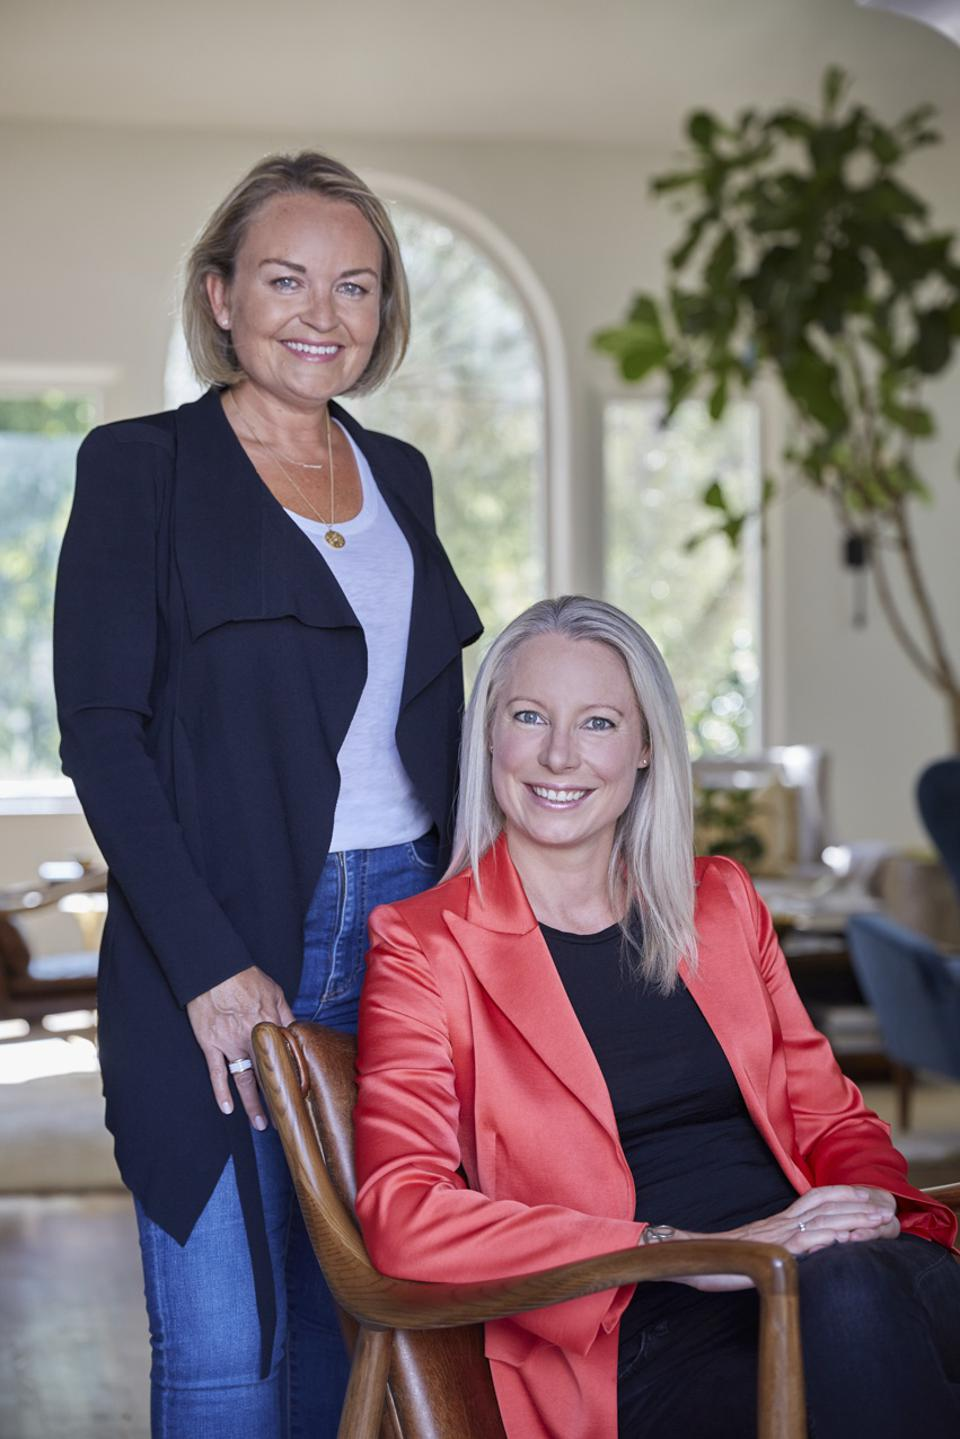 Kate Vale and Marisa Warren, Co-founders and General Partners at ALIAVIA